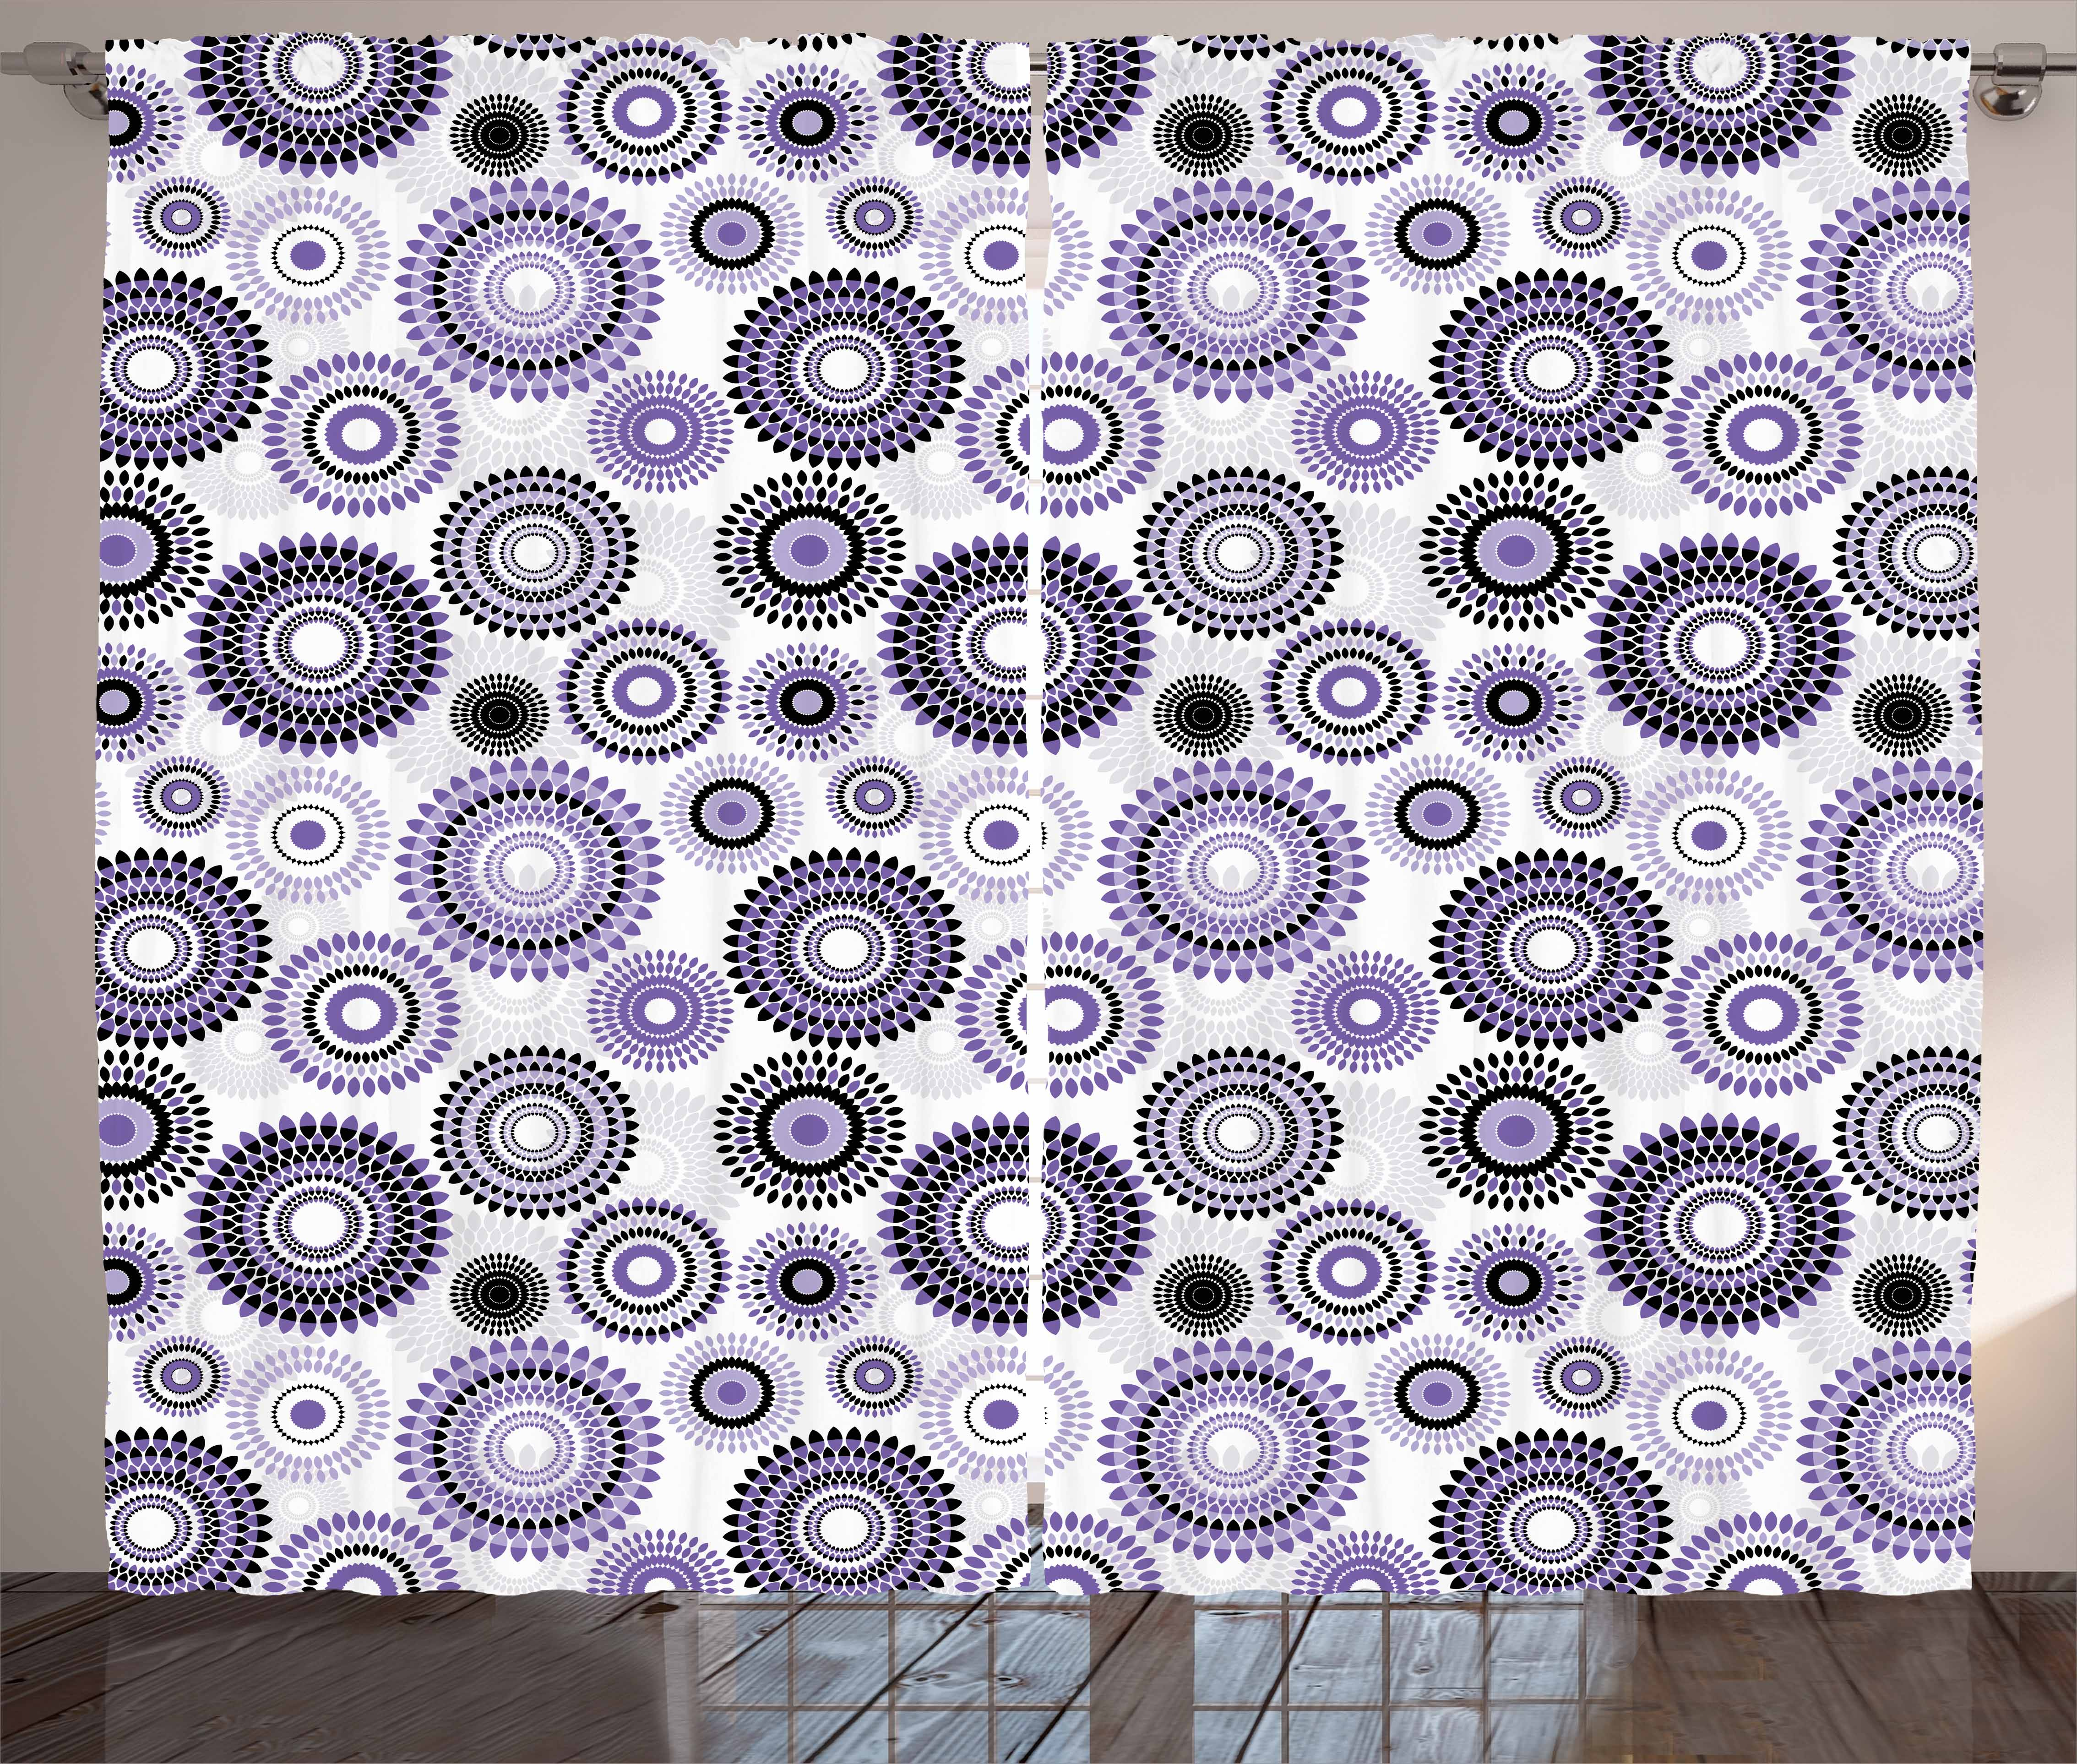 Purple And Black Curtains 2 Panels Set, Scattered Round Figures Big And  Small With Mandala Inspired ...